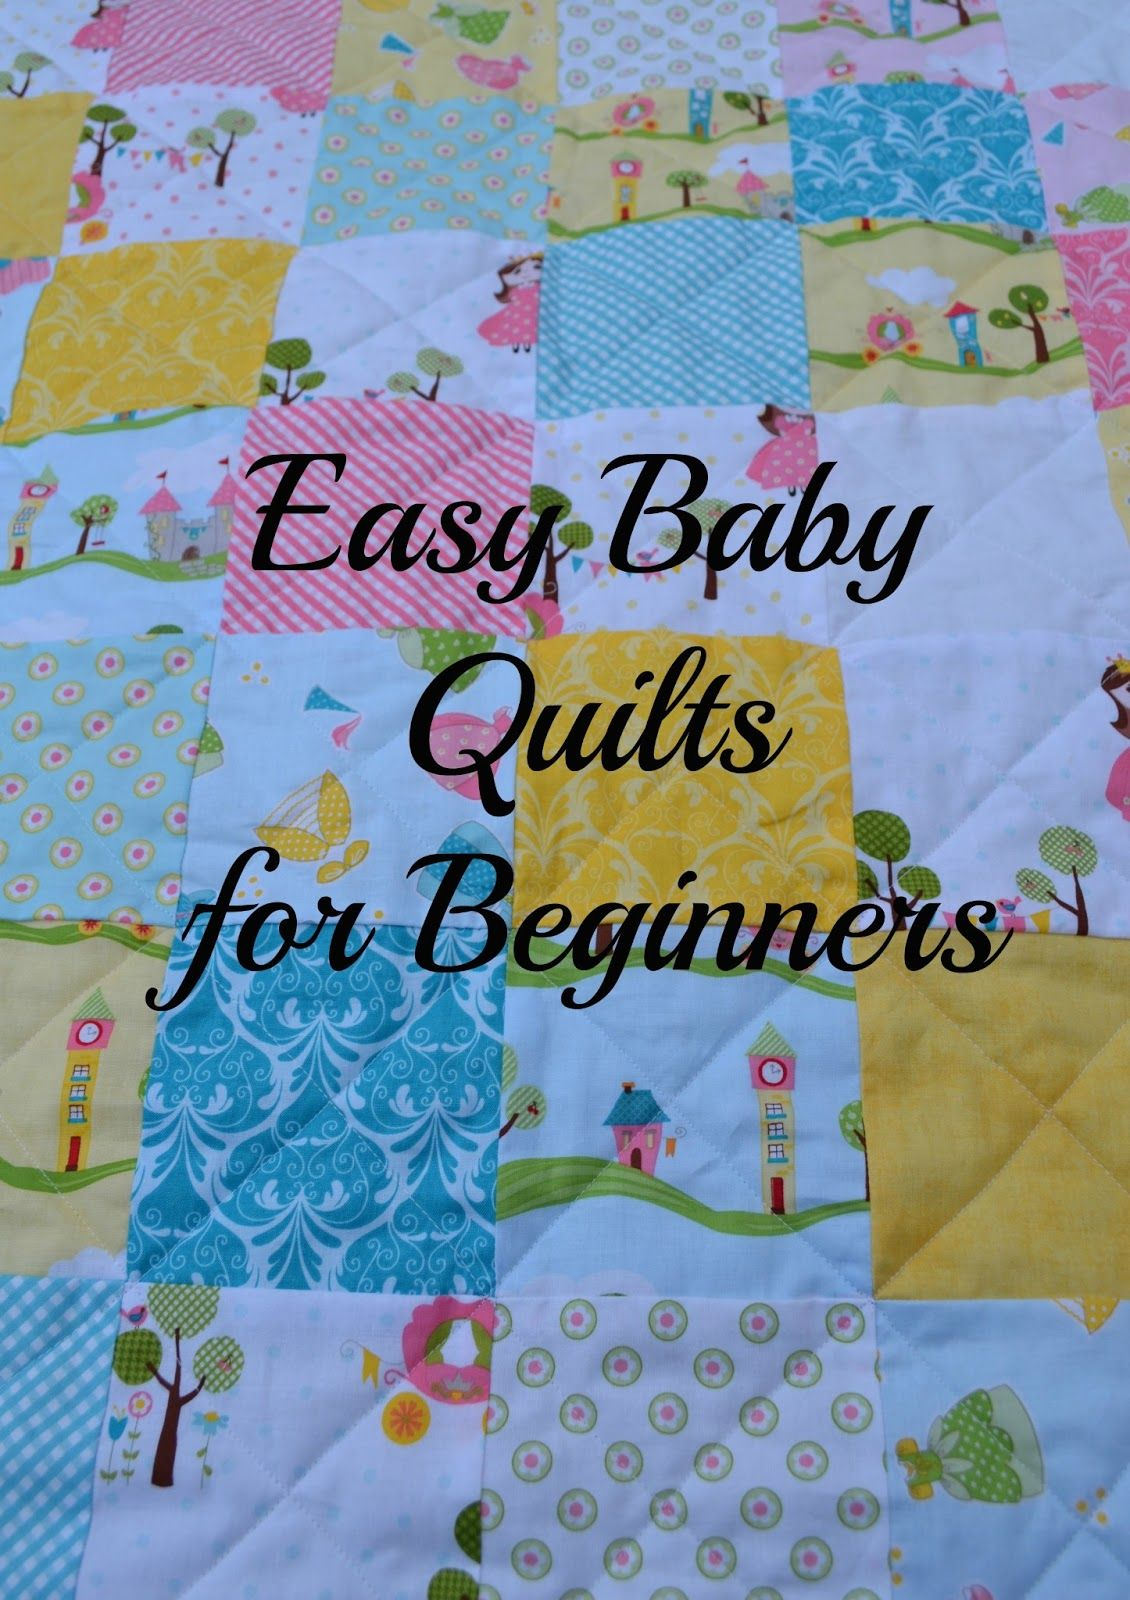 015a Jpg 1 130 1 600 Pixels Baby Quilts Quilting For Beginners Quilts